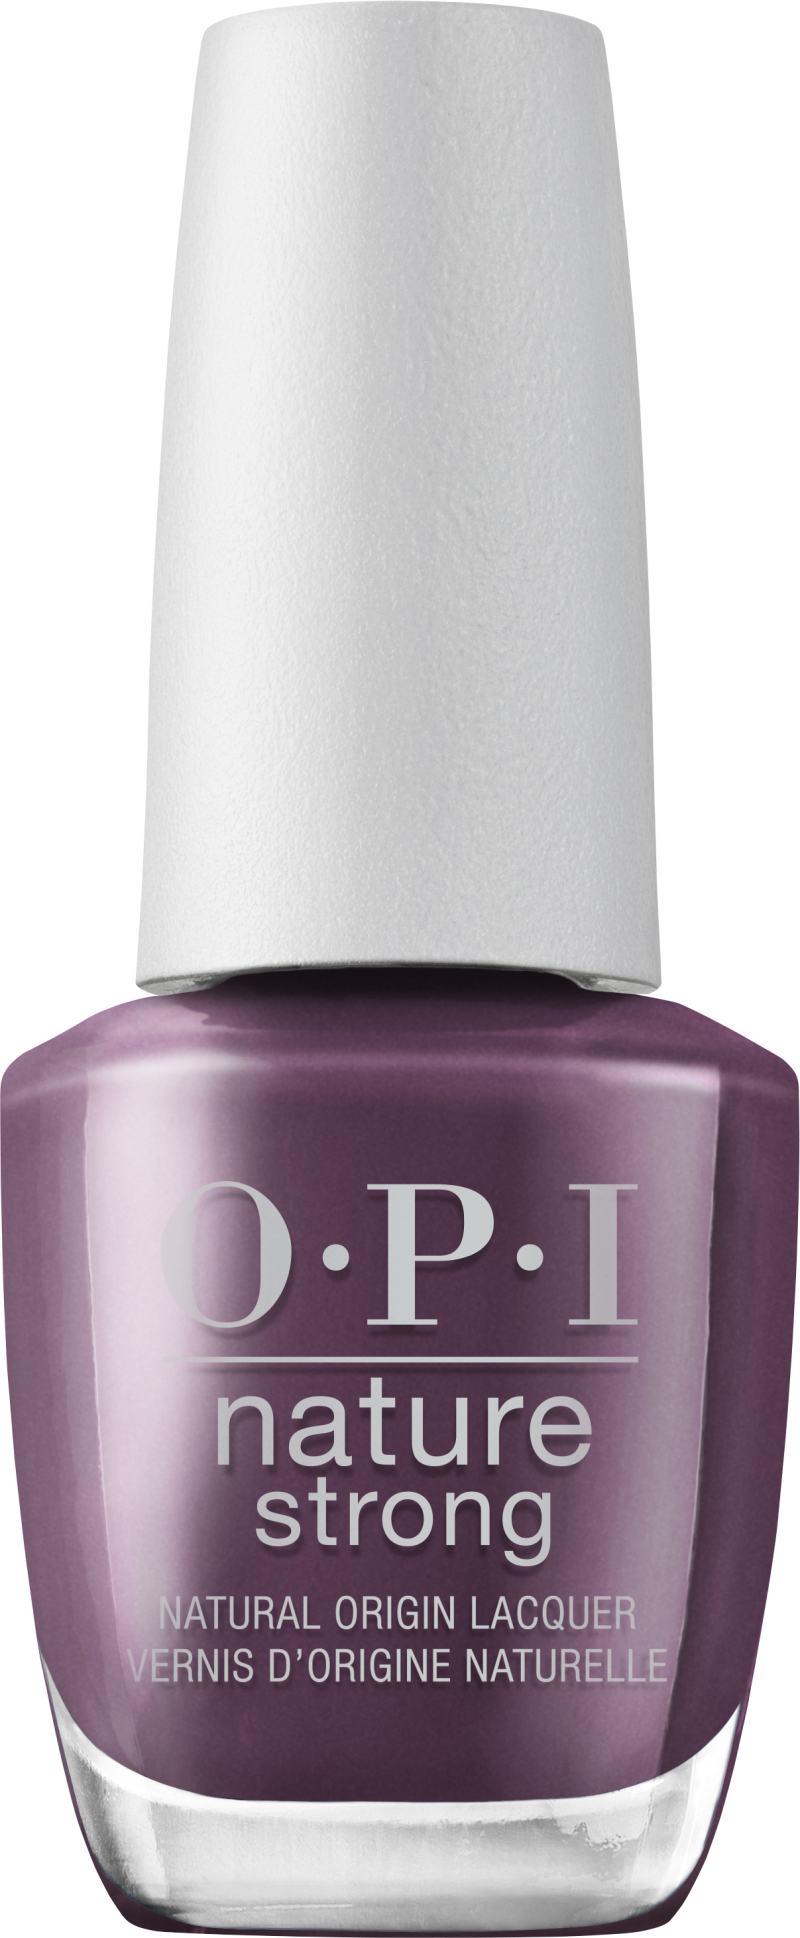 OPI NATURE STRONG Eco-Maniac